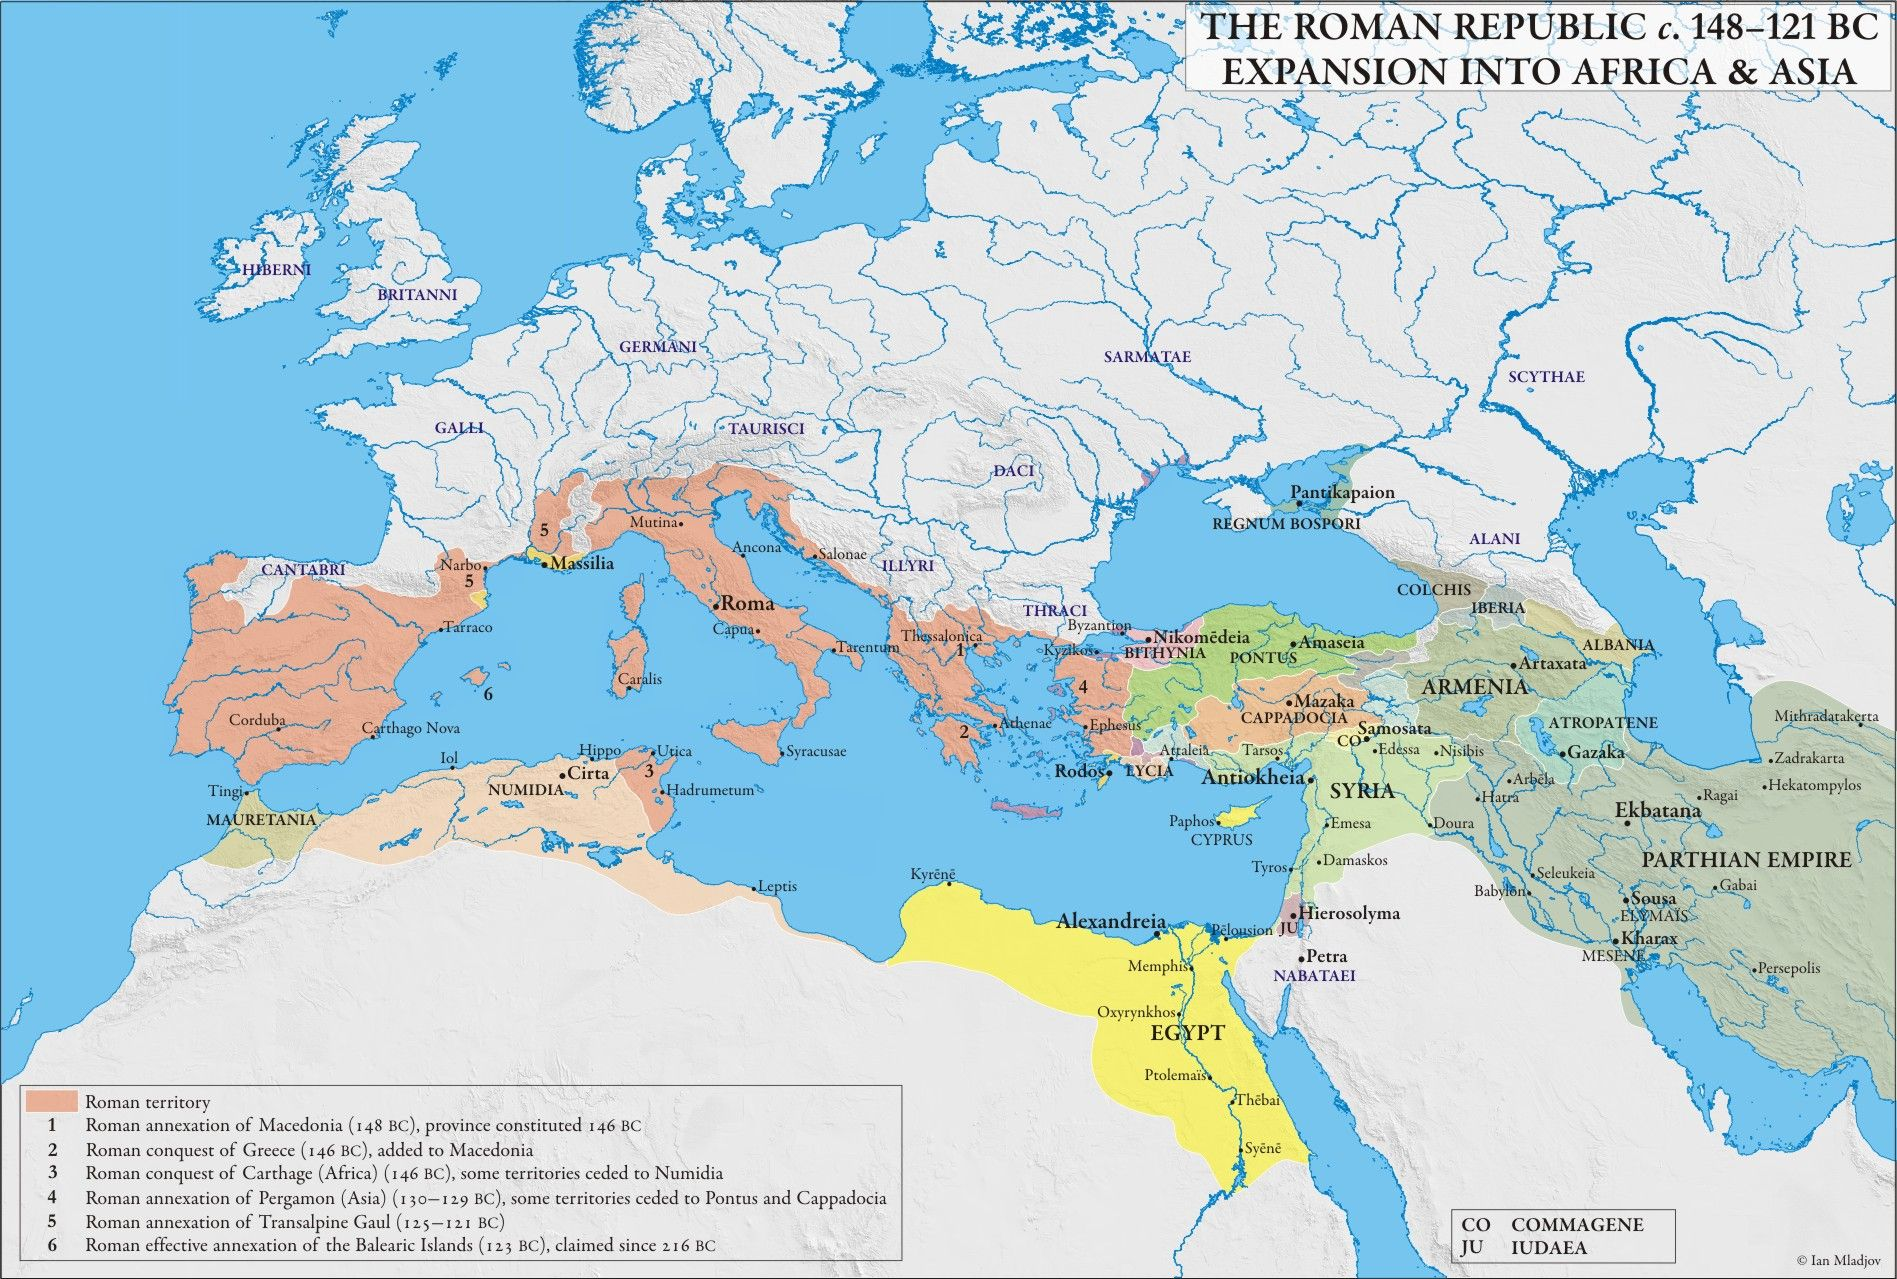 Roman Republican Expansion into Africa and Asia  Maps of the